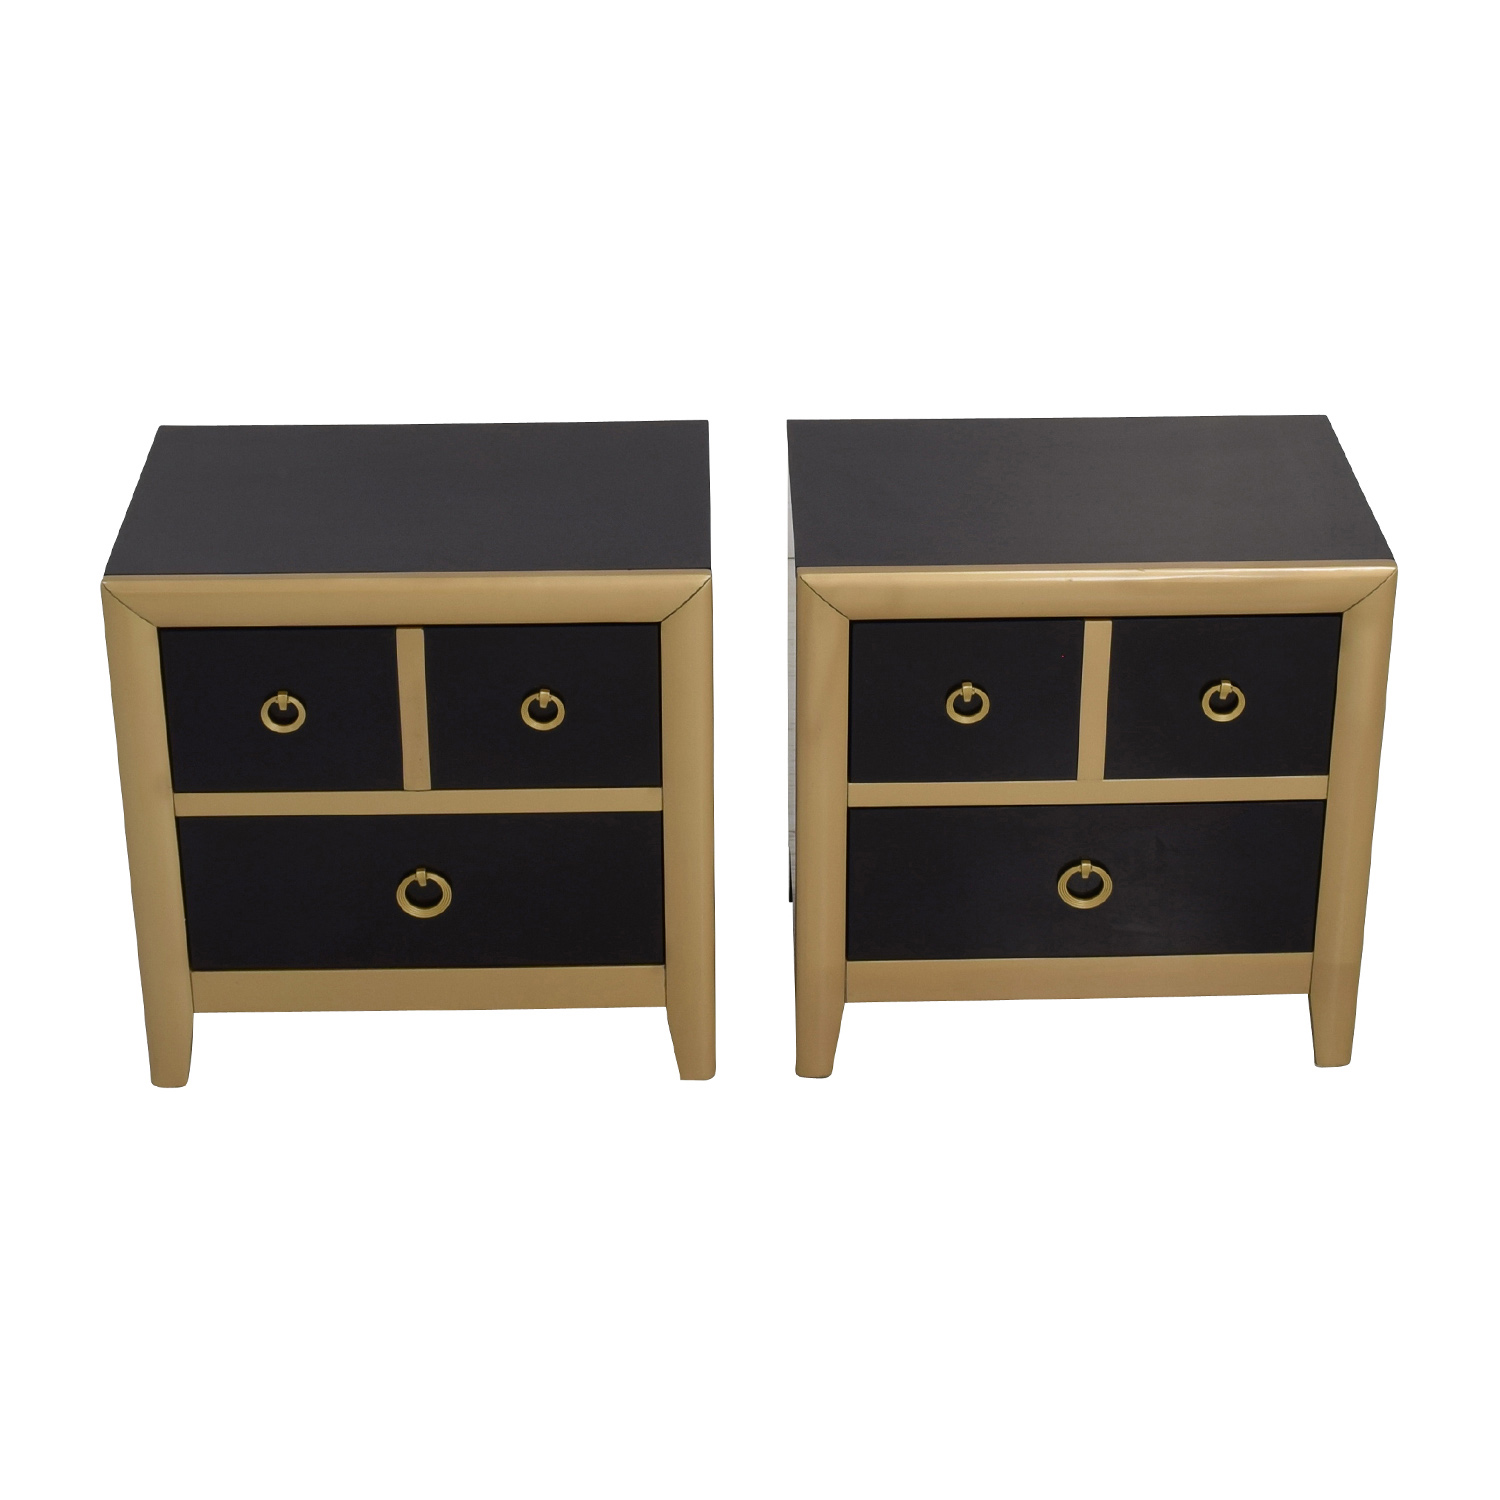 Coaster Furniture Coaster Furniture Black and Gold Two-Drawer Nightstands second hand